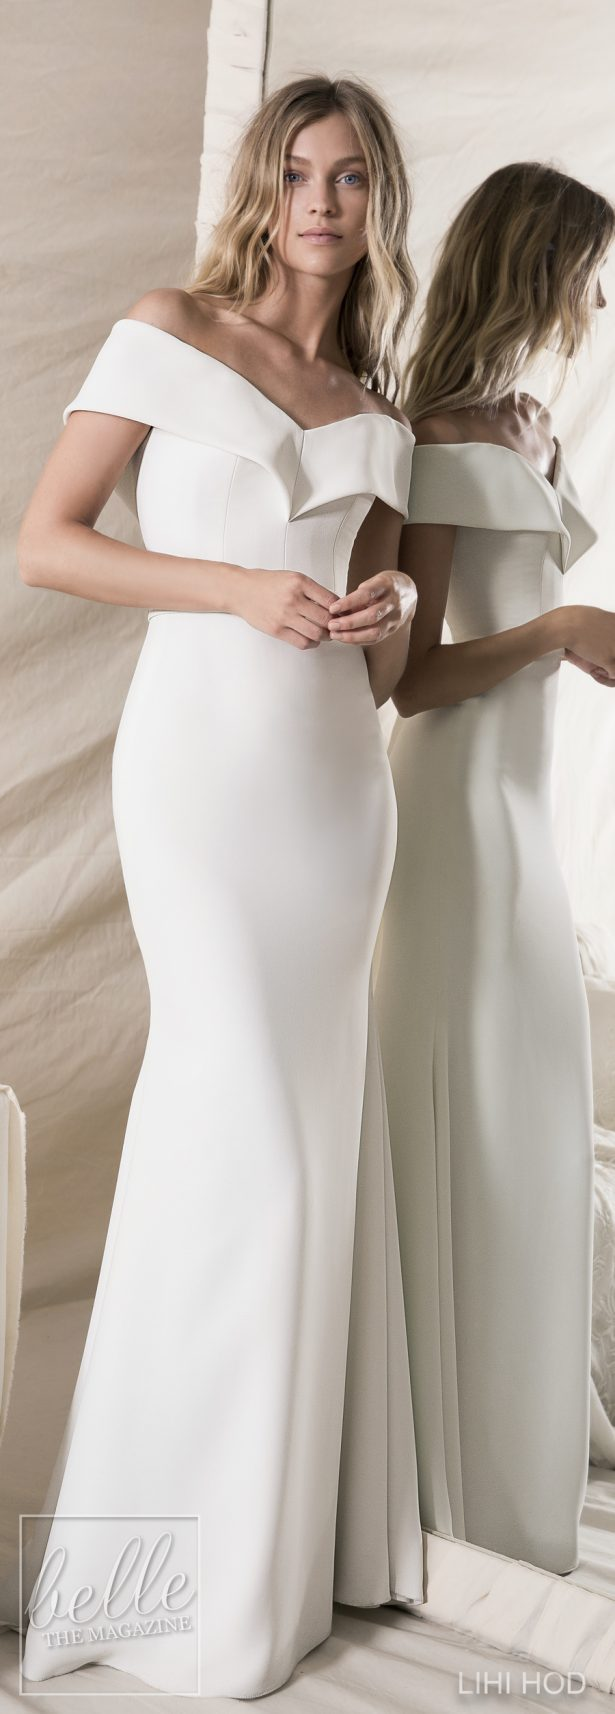 Simple Wedding Dress by by Lihi Hod